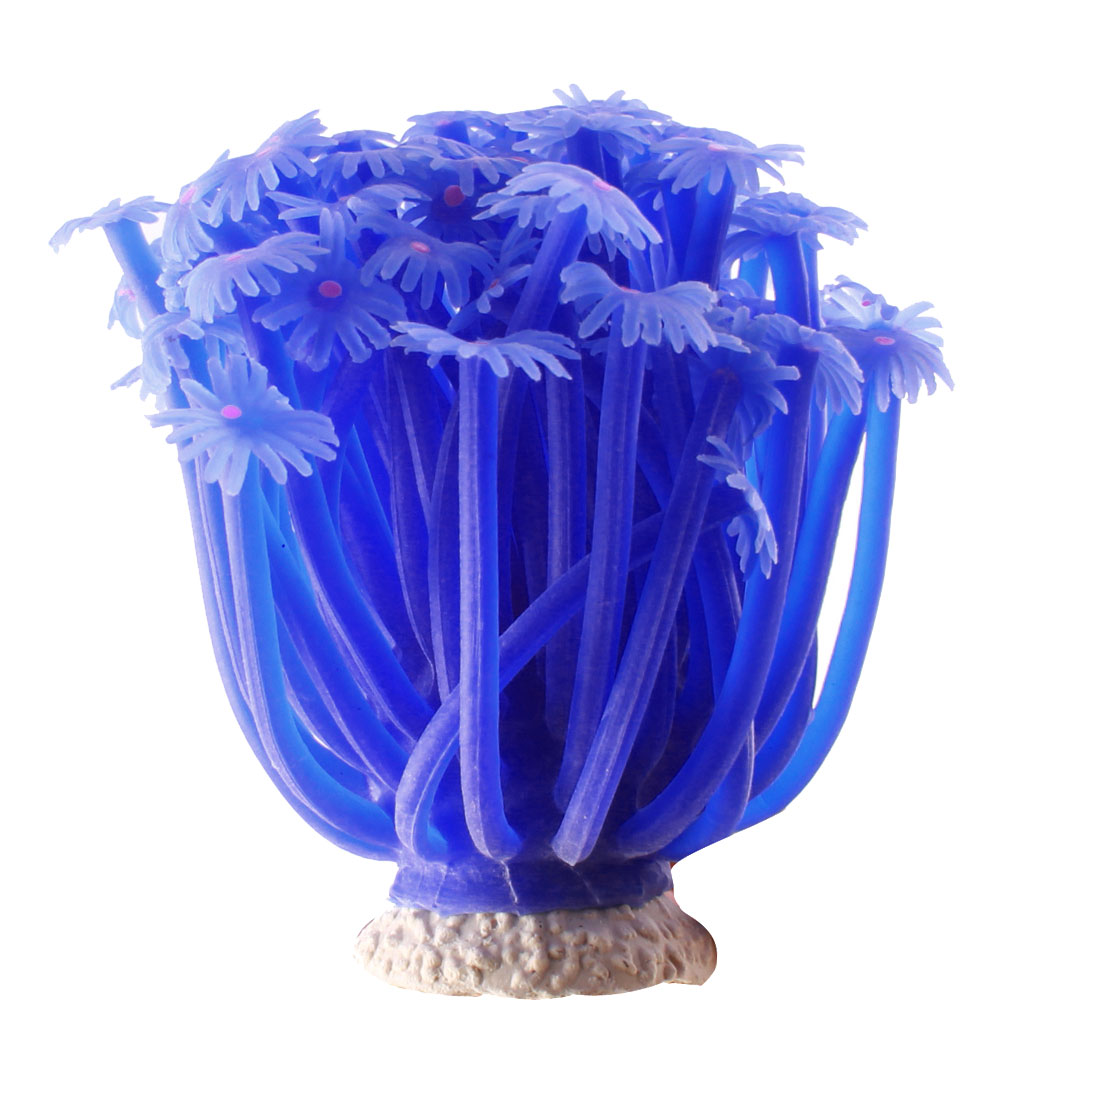 "Blue Silicone Manmade Water Coral Plant Fish Tank Aquarium Ornament 3"" Height"